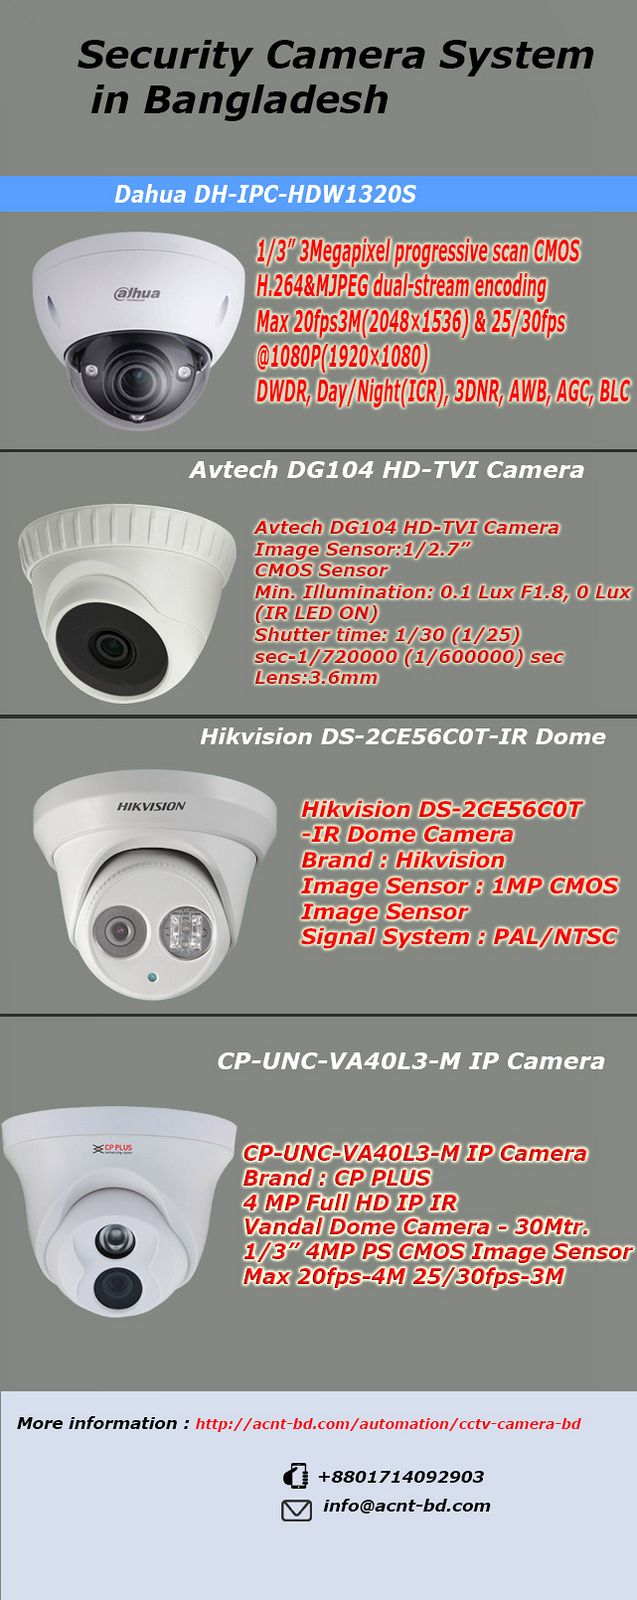 https://flic.kr/p/TfKTn2 | CCTV Camera,IP Camera Price in Bangladesh | All computer and networking technology is providing CCTV camera, IP Camera, DVR. NVR, access controller supplier in Bangladesh.